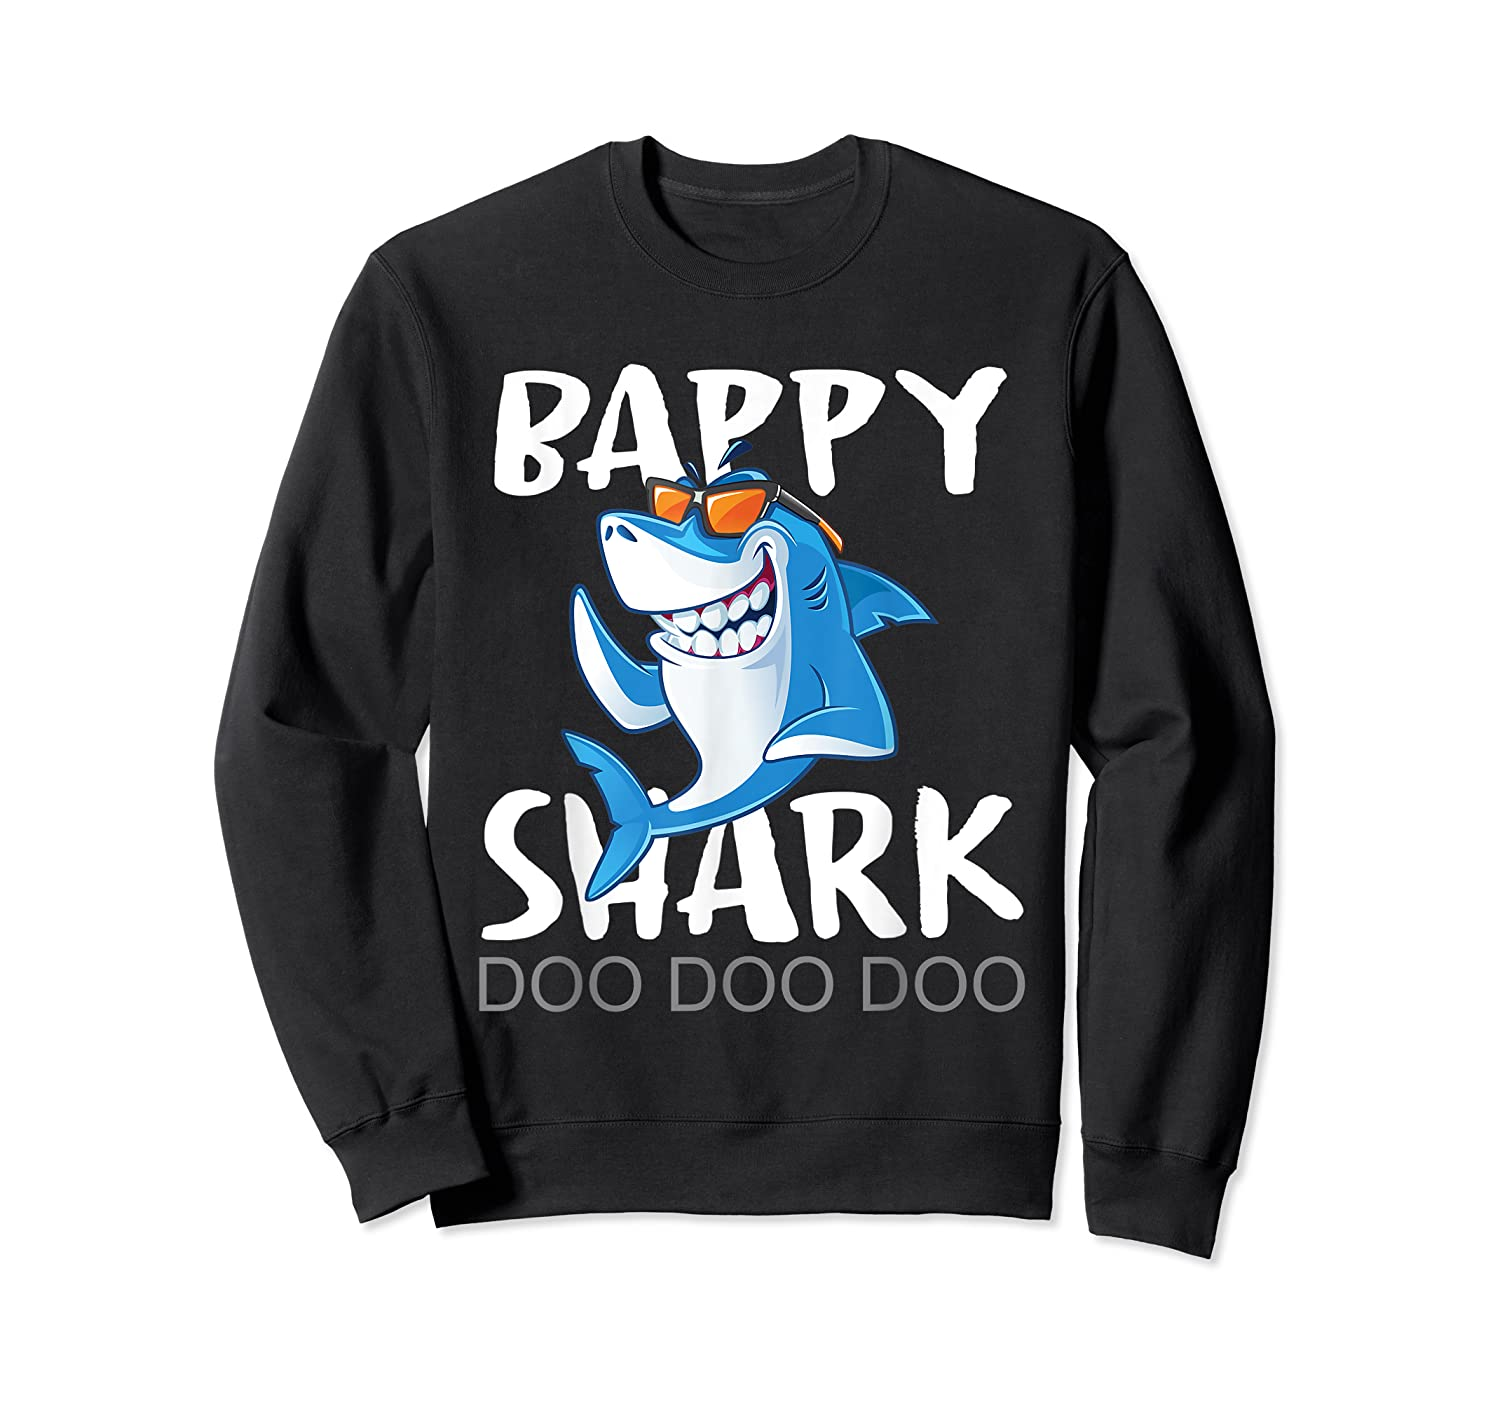 Bappy Shark, Fathers Day Gift From Wife Son Daughter Shirts Crewneck Sweater